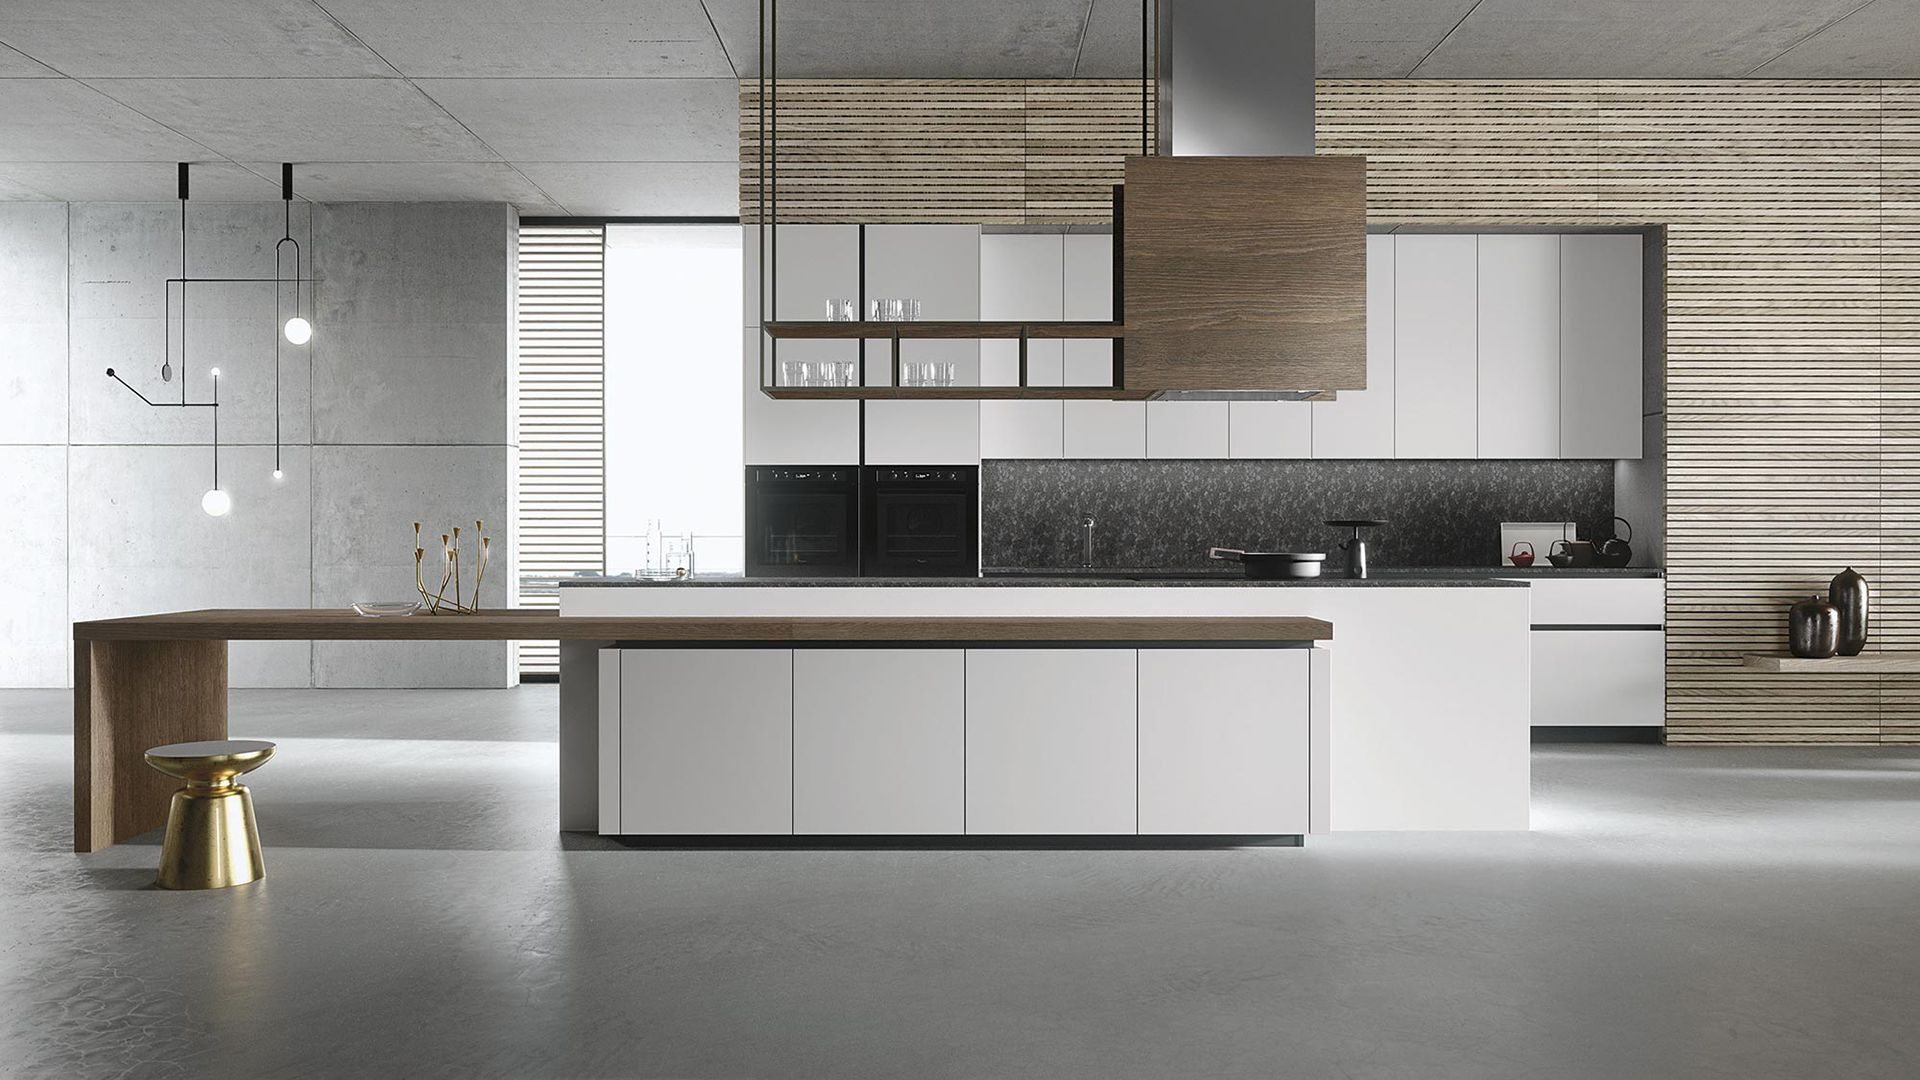 Pin by Jerry Truong on Modern Kitchen in 2018 | Pinterest | Cucine ...